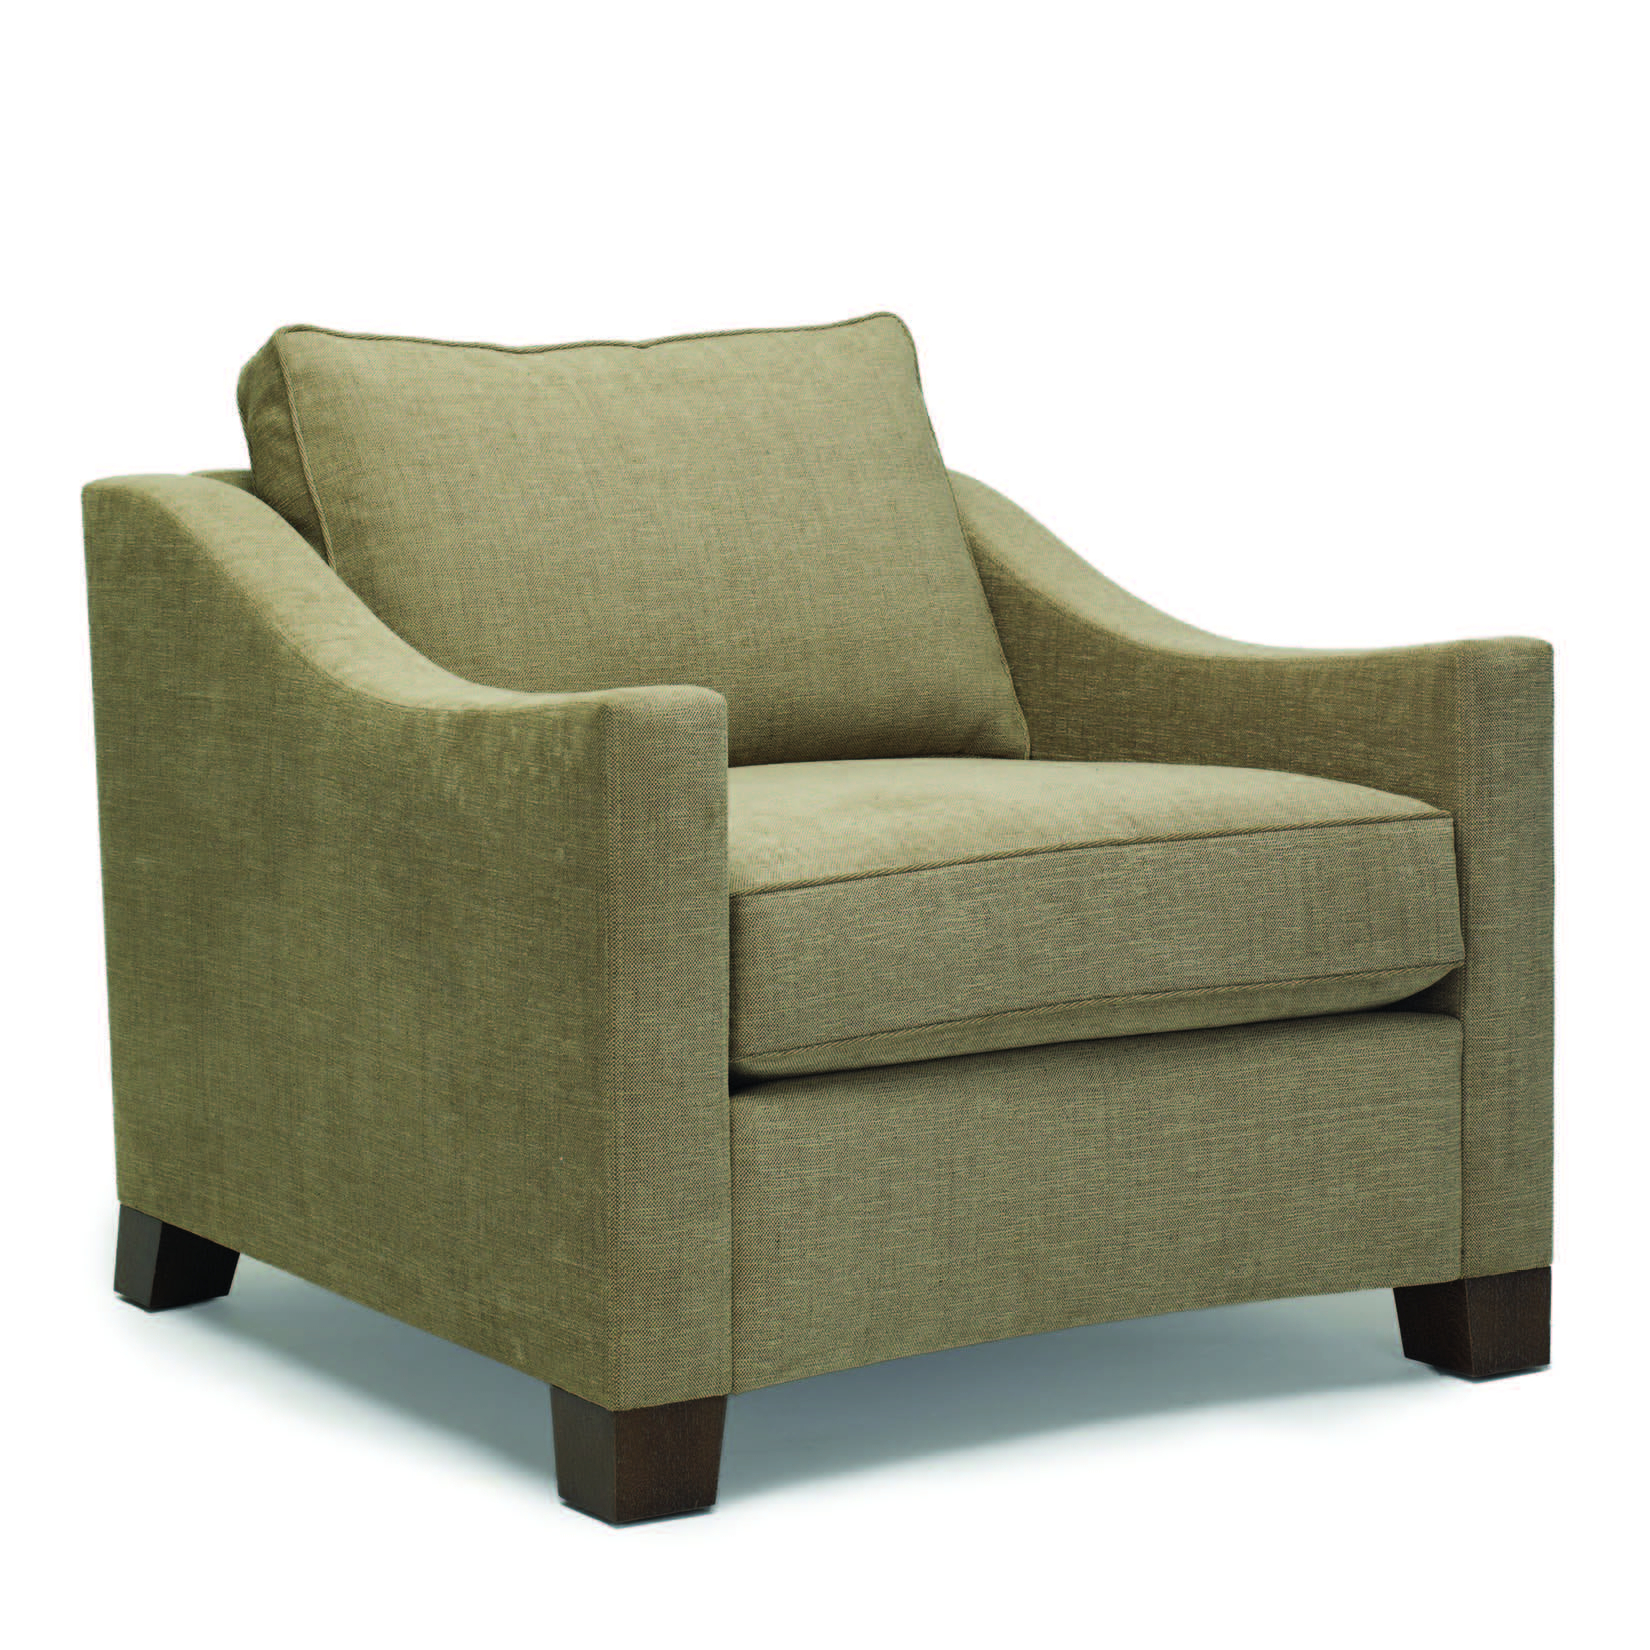 Lounge & Occasional : Dennis Miller Associates Fine Contemporary In Bailey Angled Track Arm Swivel Gliders (View 7 of 25)